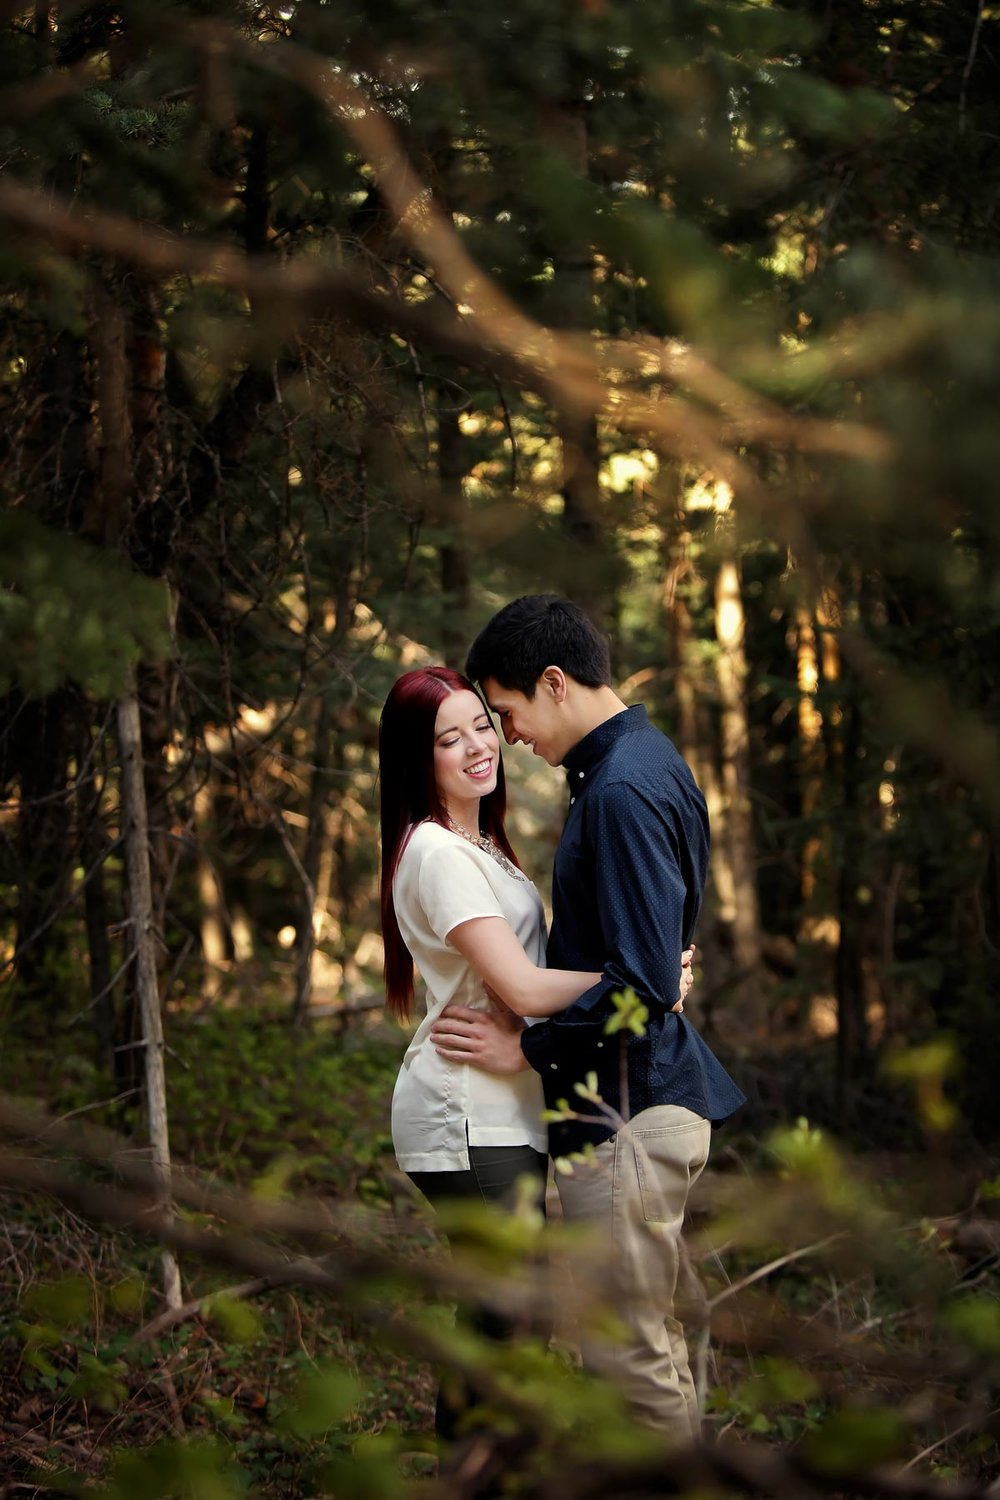 creative-engagement-photos-in-nature-angela-howard.jpg